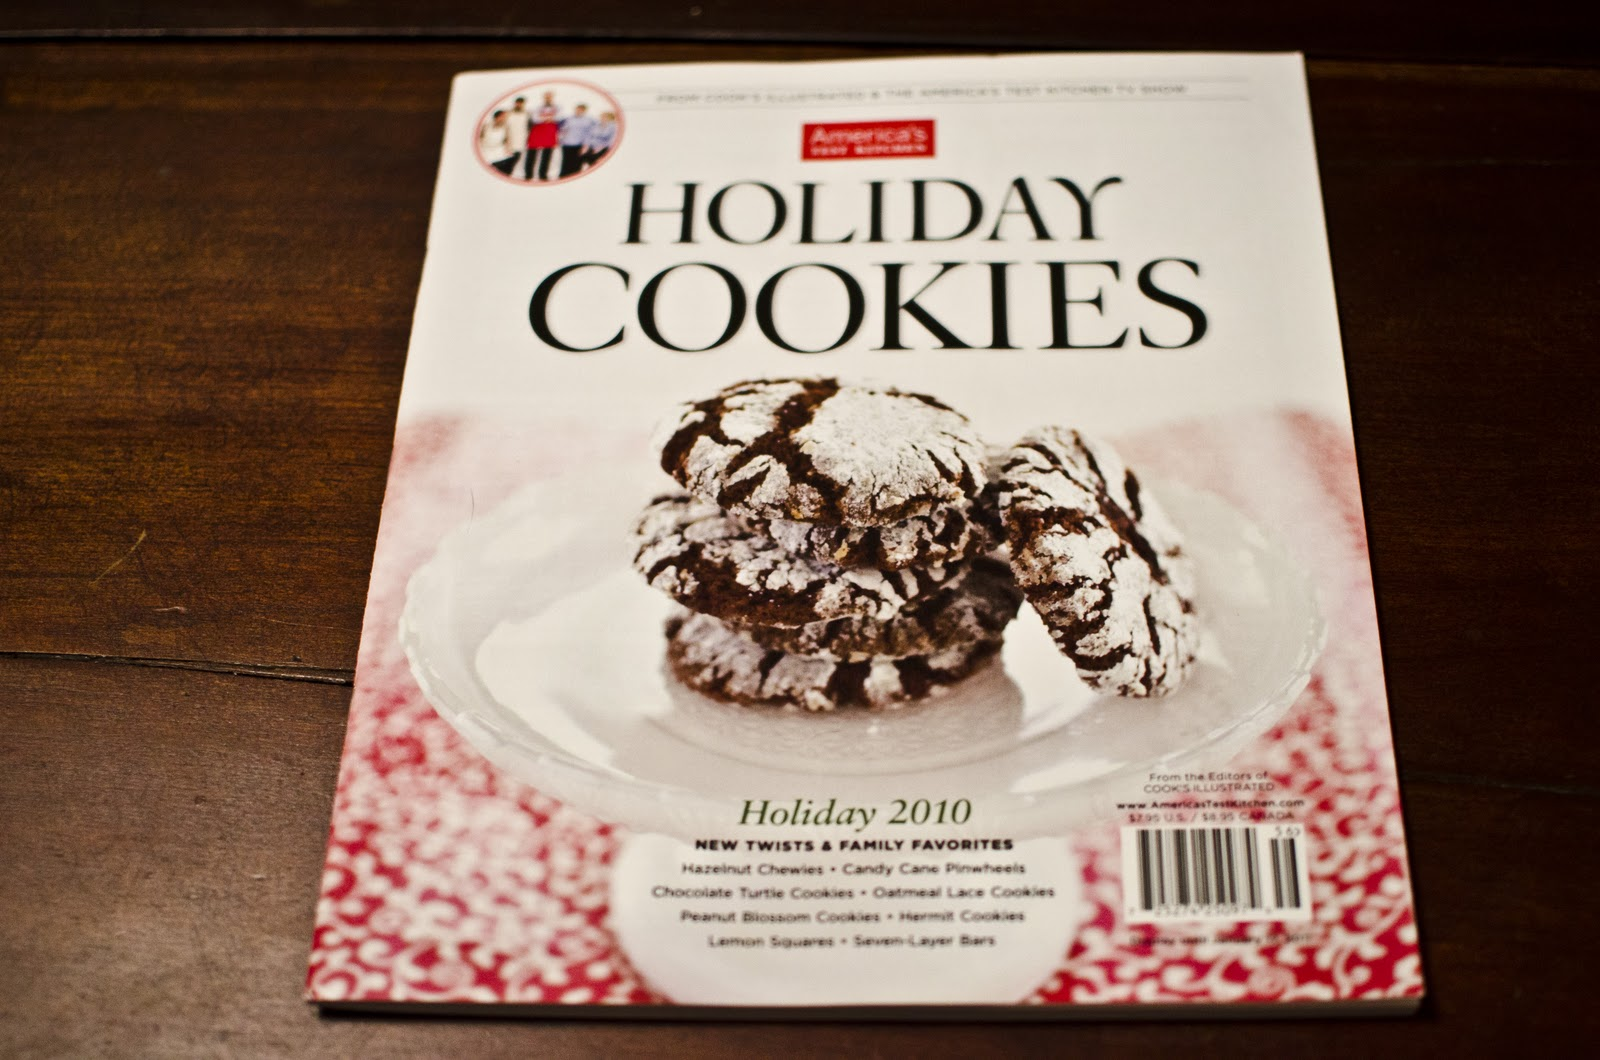 2010 Holiday Cookies Issue from America's Test Kitchen in Brookline